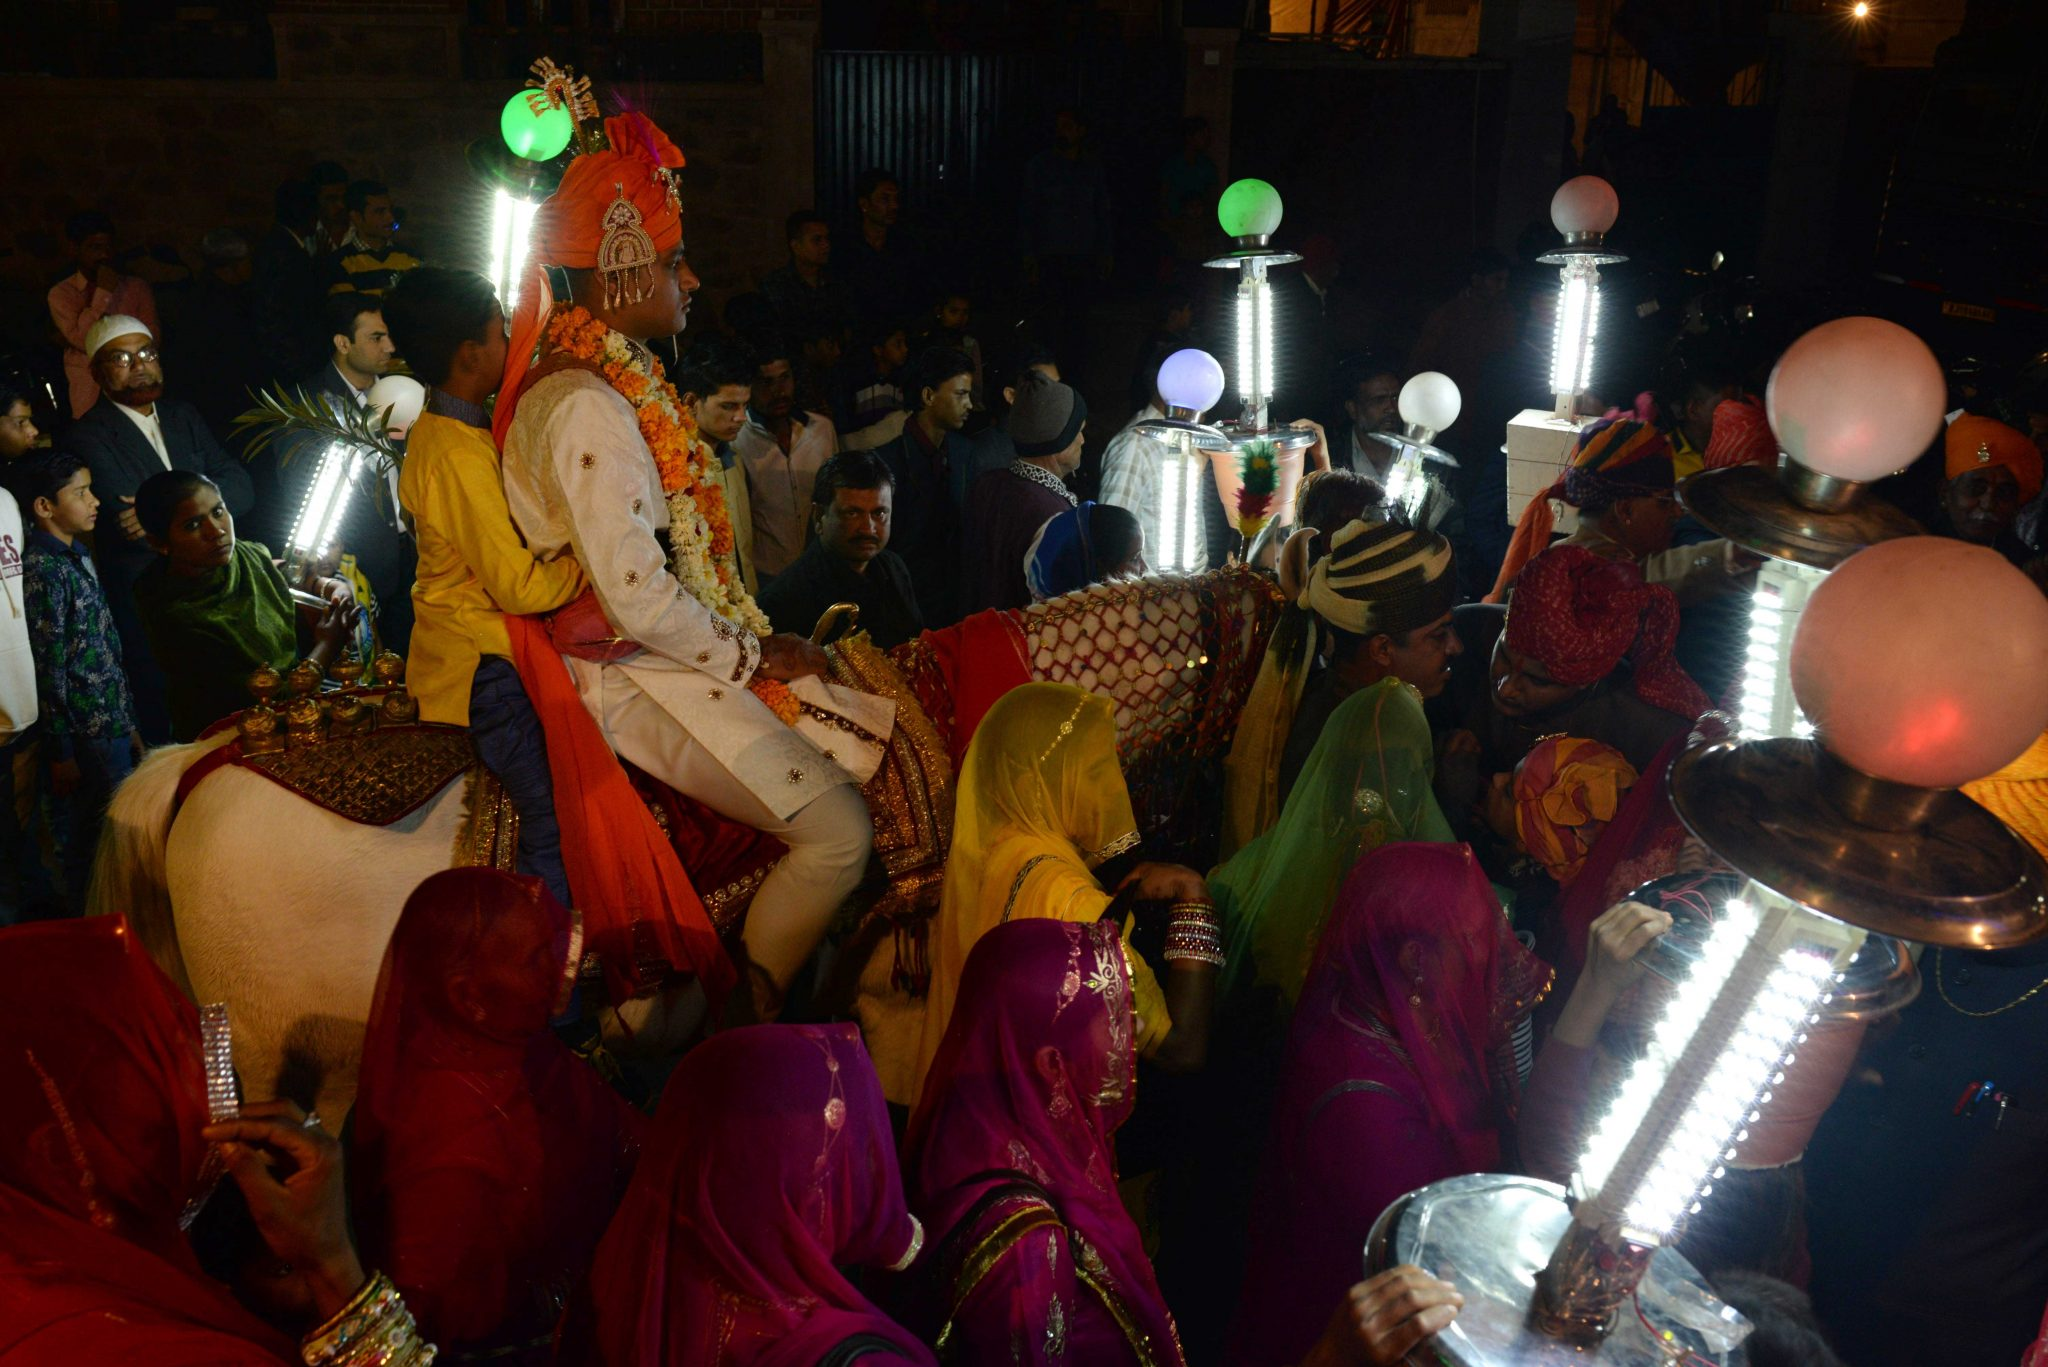 North Indian Baraat (groom's wedding procession)